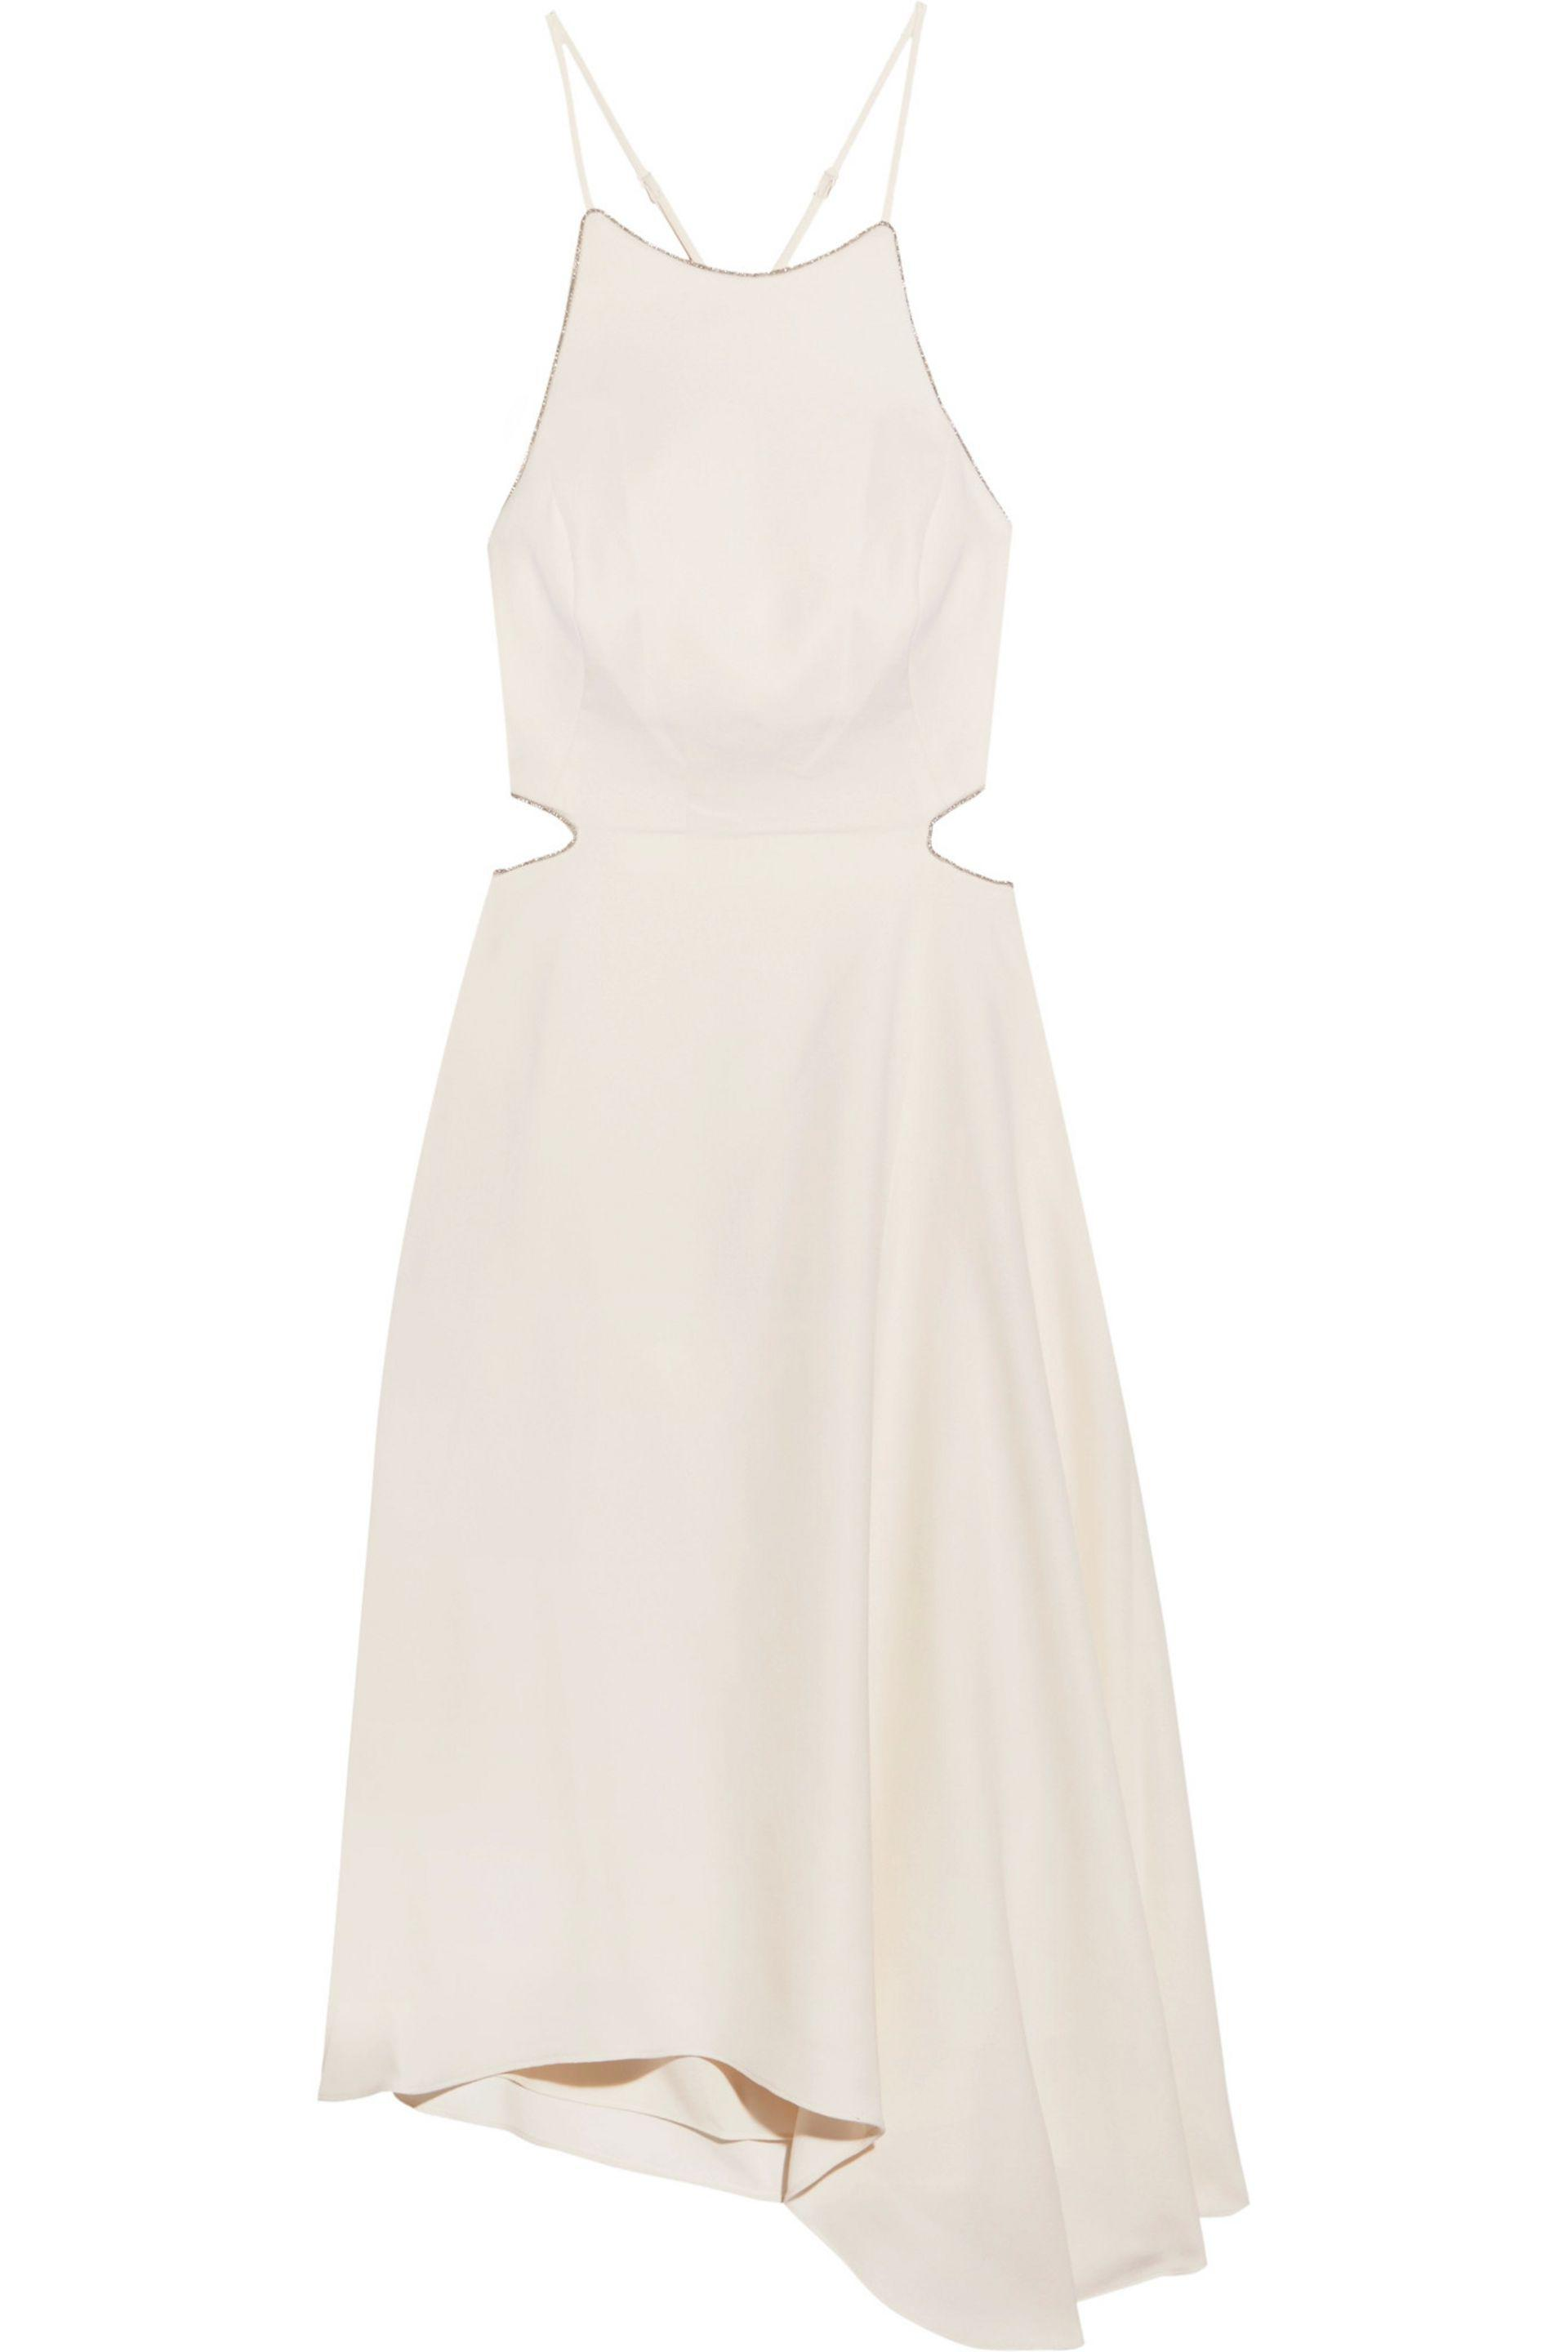 2018 Unisex Cheap Online Knock Off Halston Heritage Woman Asymmetric Embroidered Twill Midi Dress Beige Size 6 Halston Heritage Buy Cheap Original prPAPJX